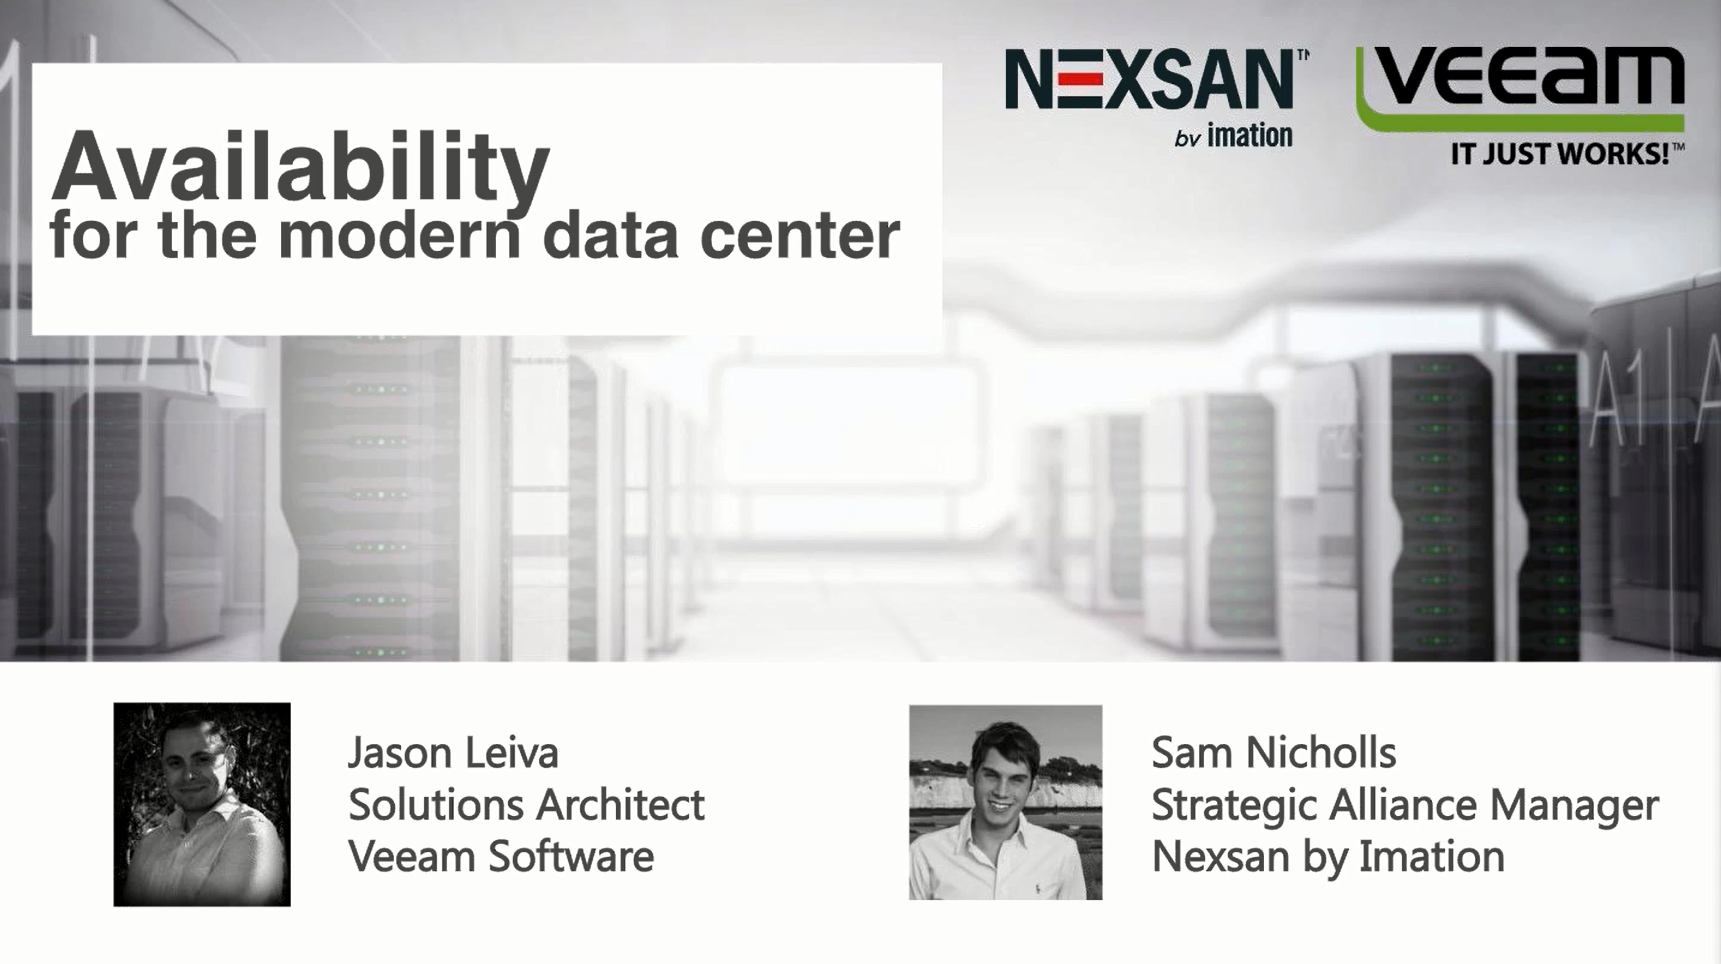 Nexsan by Imation and Veeam deliver High Availability for the Modern Data Center